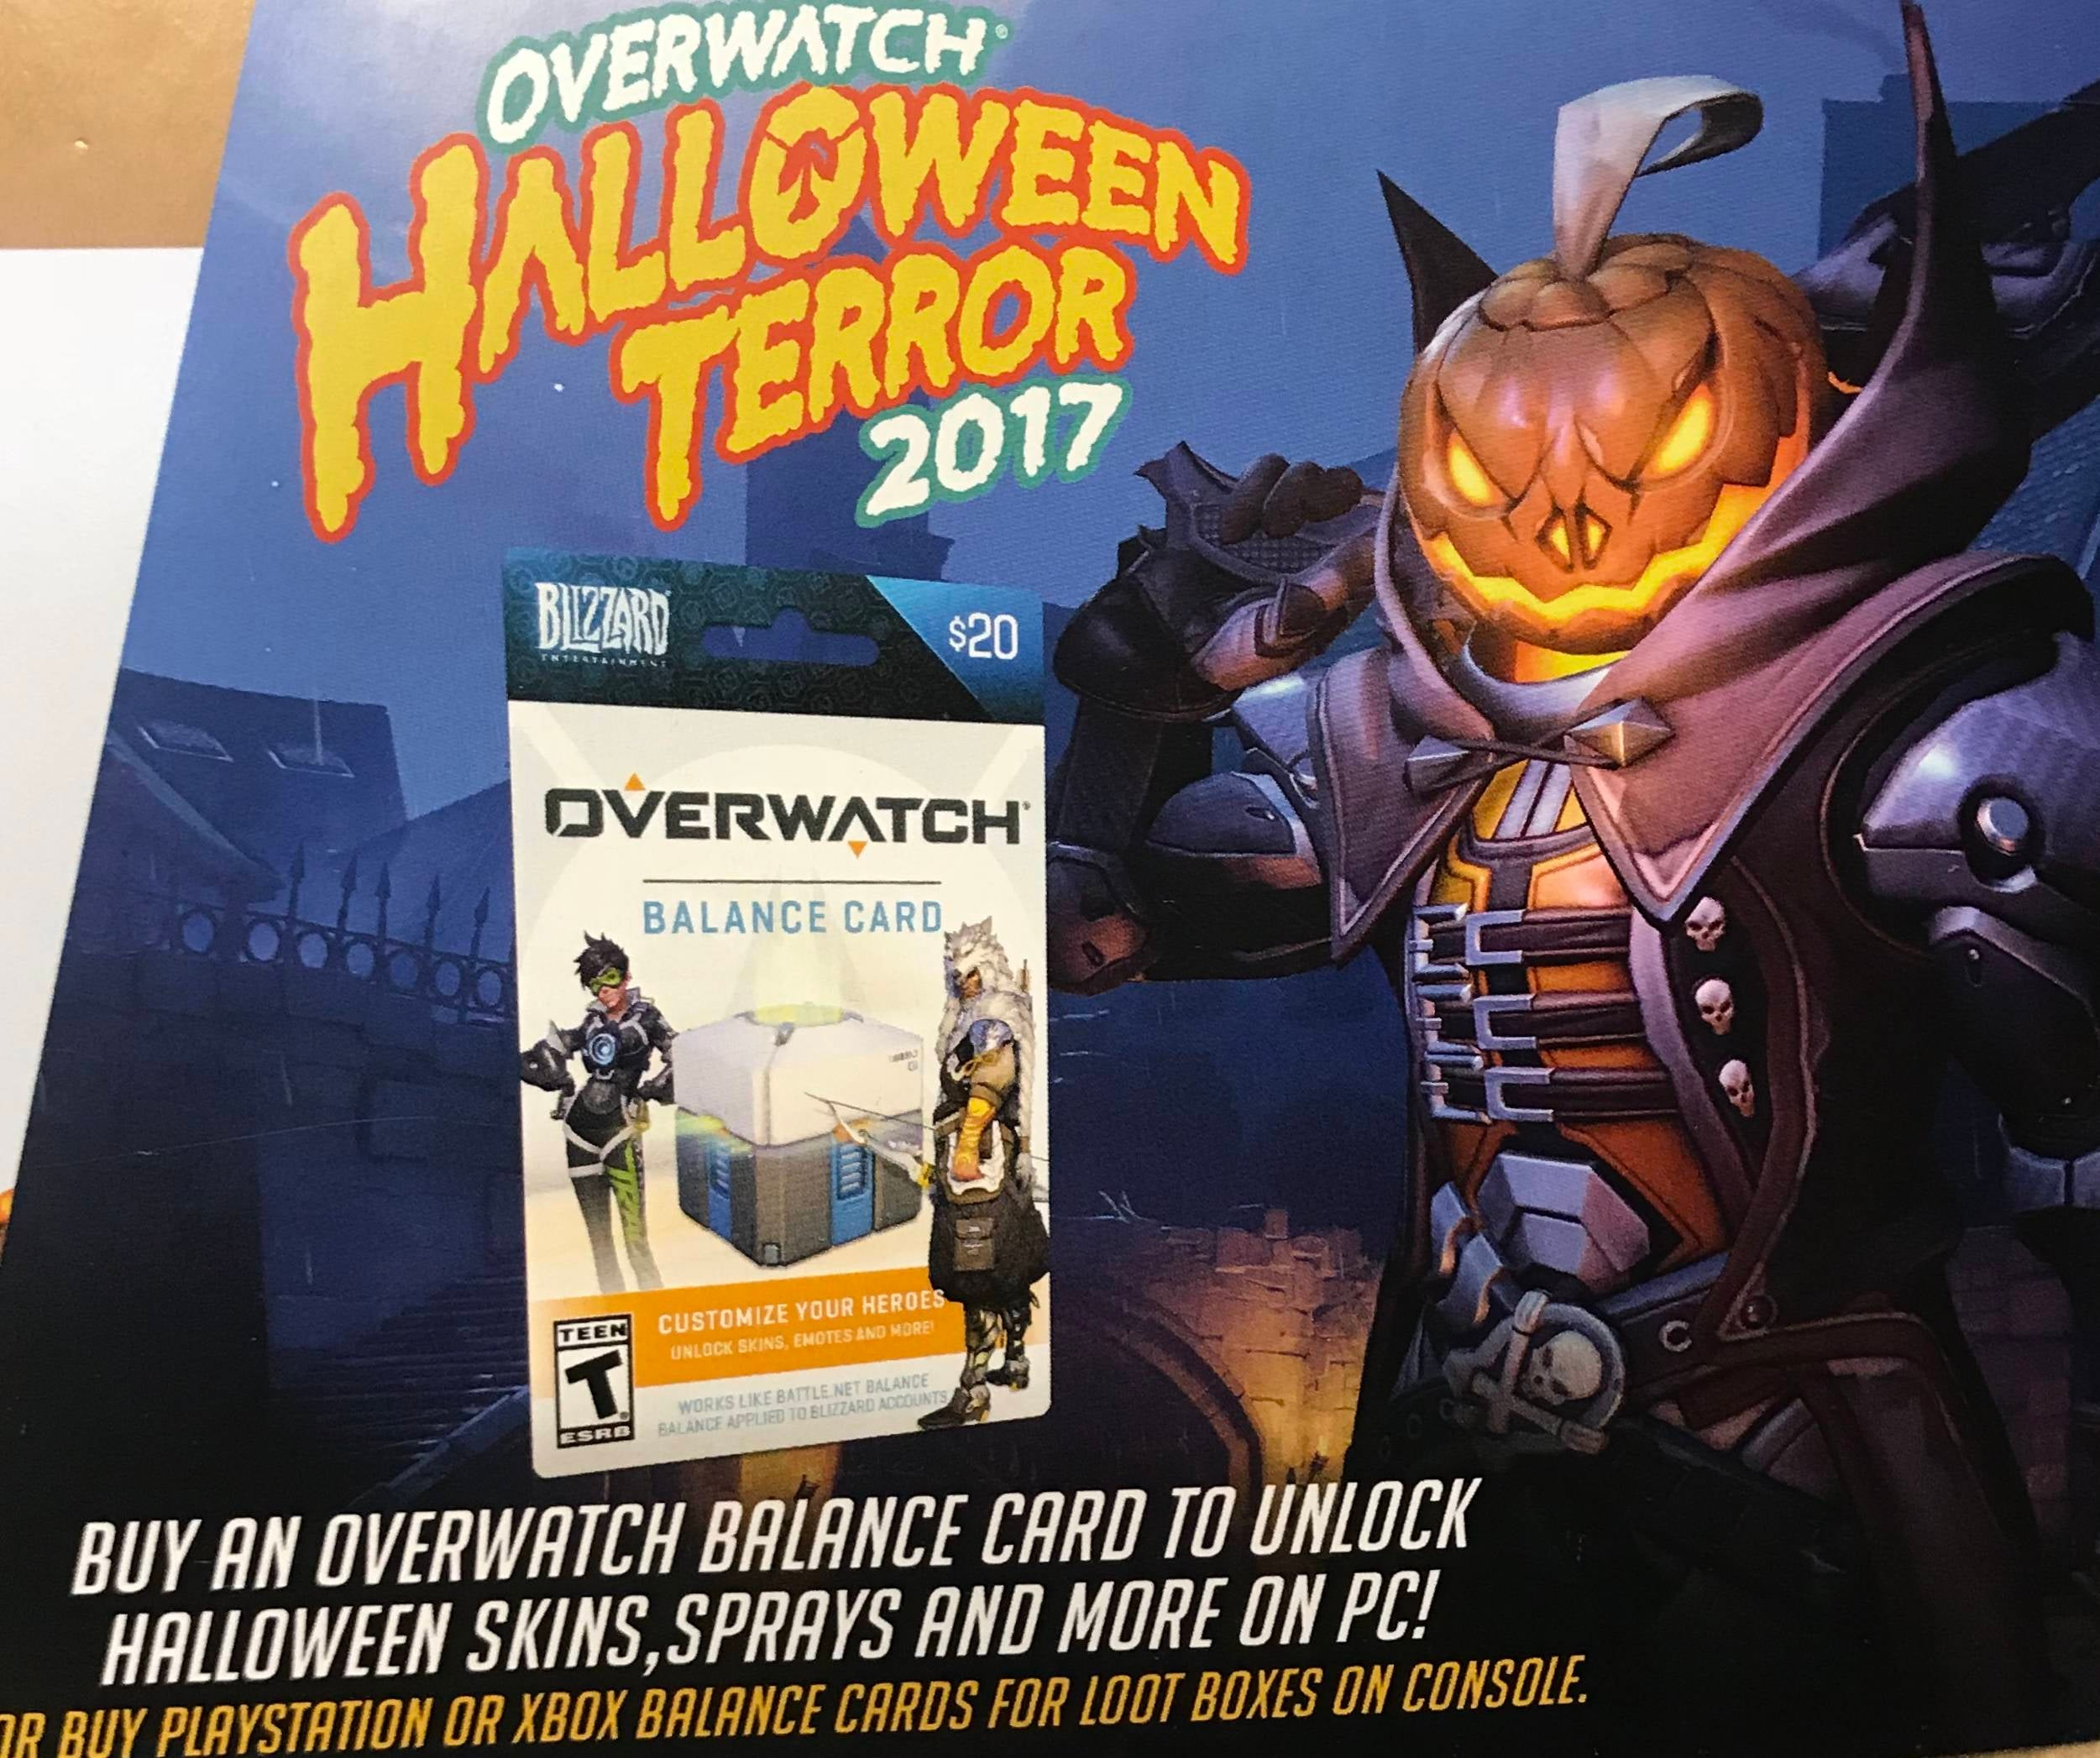 overwatch halloween event details leaked